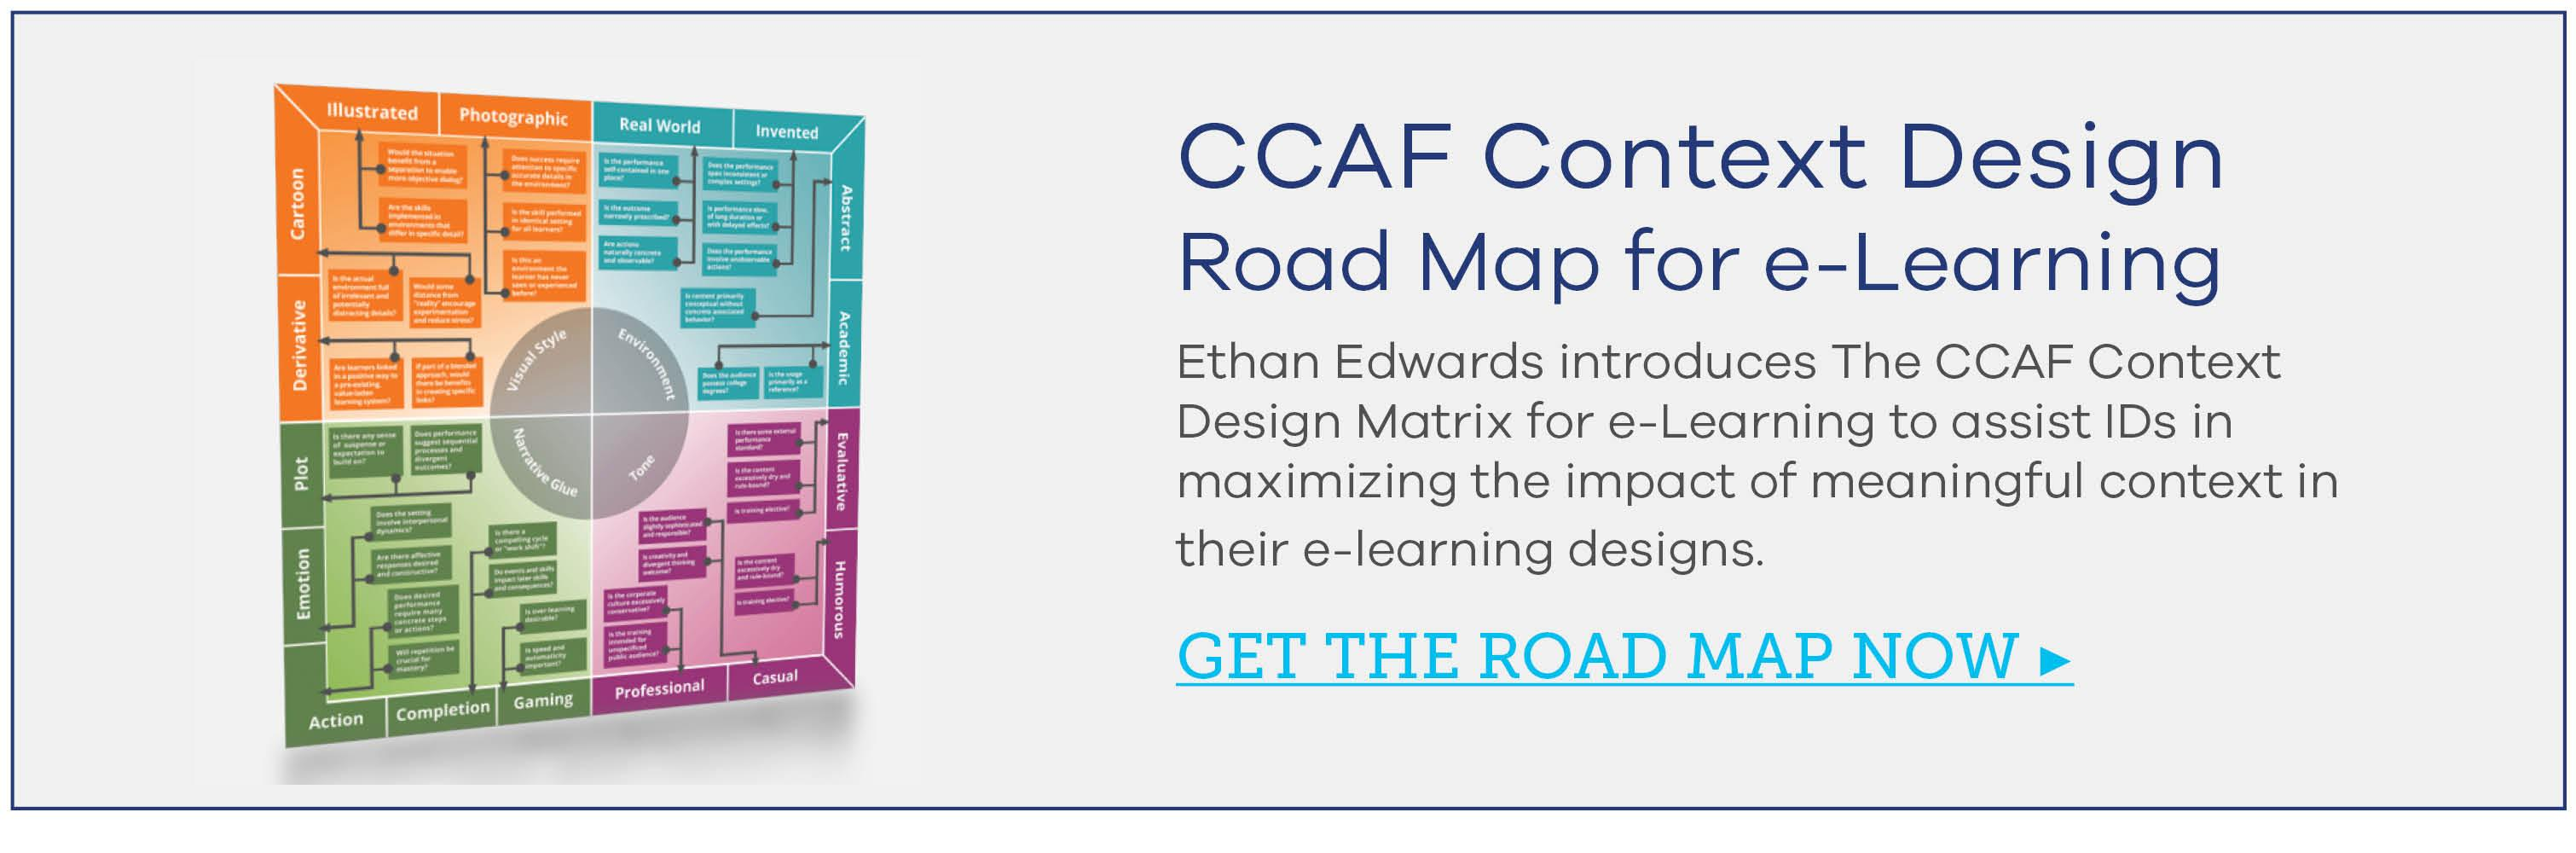 CCAF Context Design Road Map